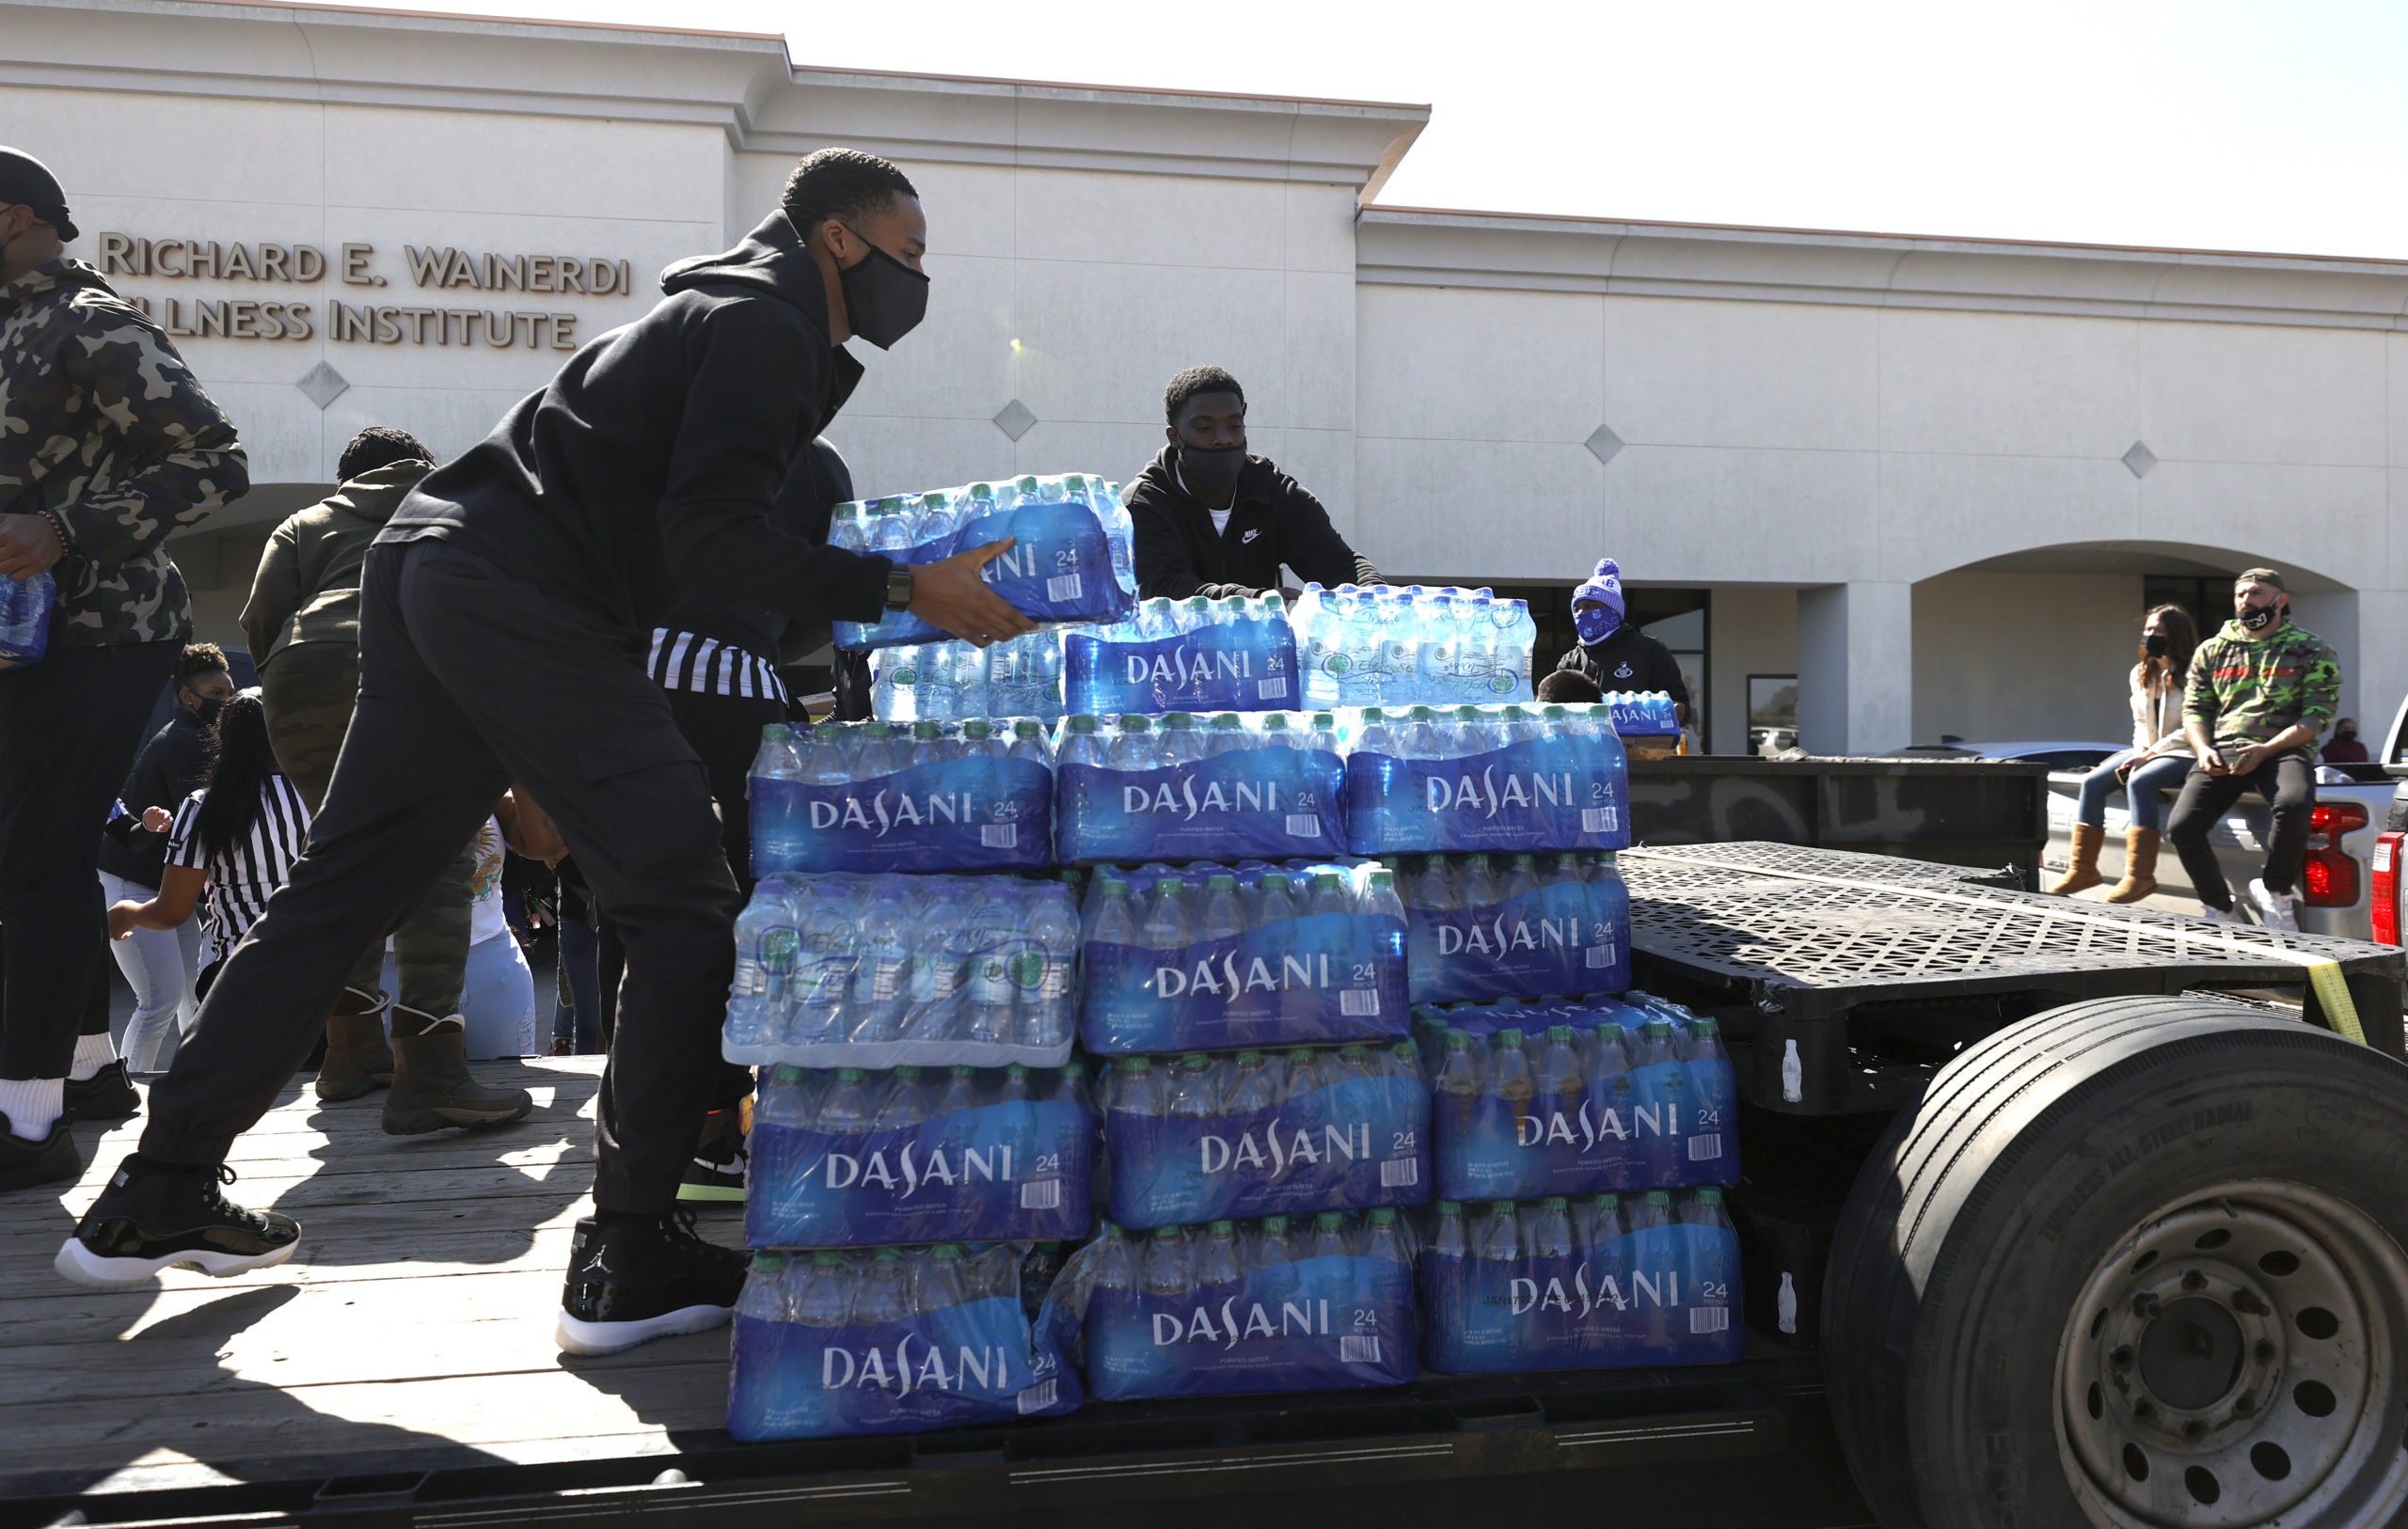 Volunteers stack cases of water during a water distribution event at the Fountain Life Center on February 20, 2021 in Houston, Texas. Much of Texas is still struggling with historic cold weather, power outages and a shortage of potable water after winter storm Uri swept across 26 states with a mix of freezing temperatures and precipitation. Many Houston residents do not have drinkable water at their homes and are relying on city water giveaways. (Photo by Justin Sullivan/Getty Images)